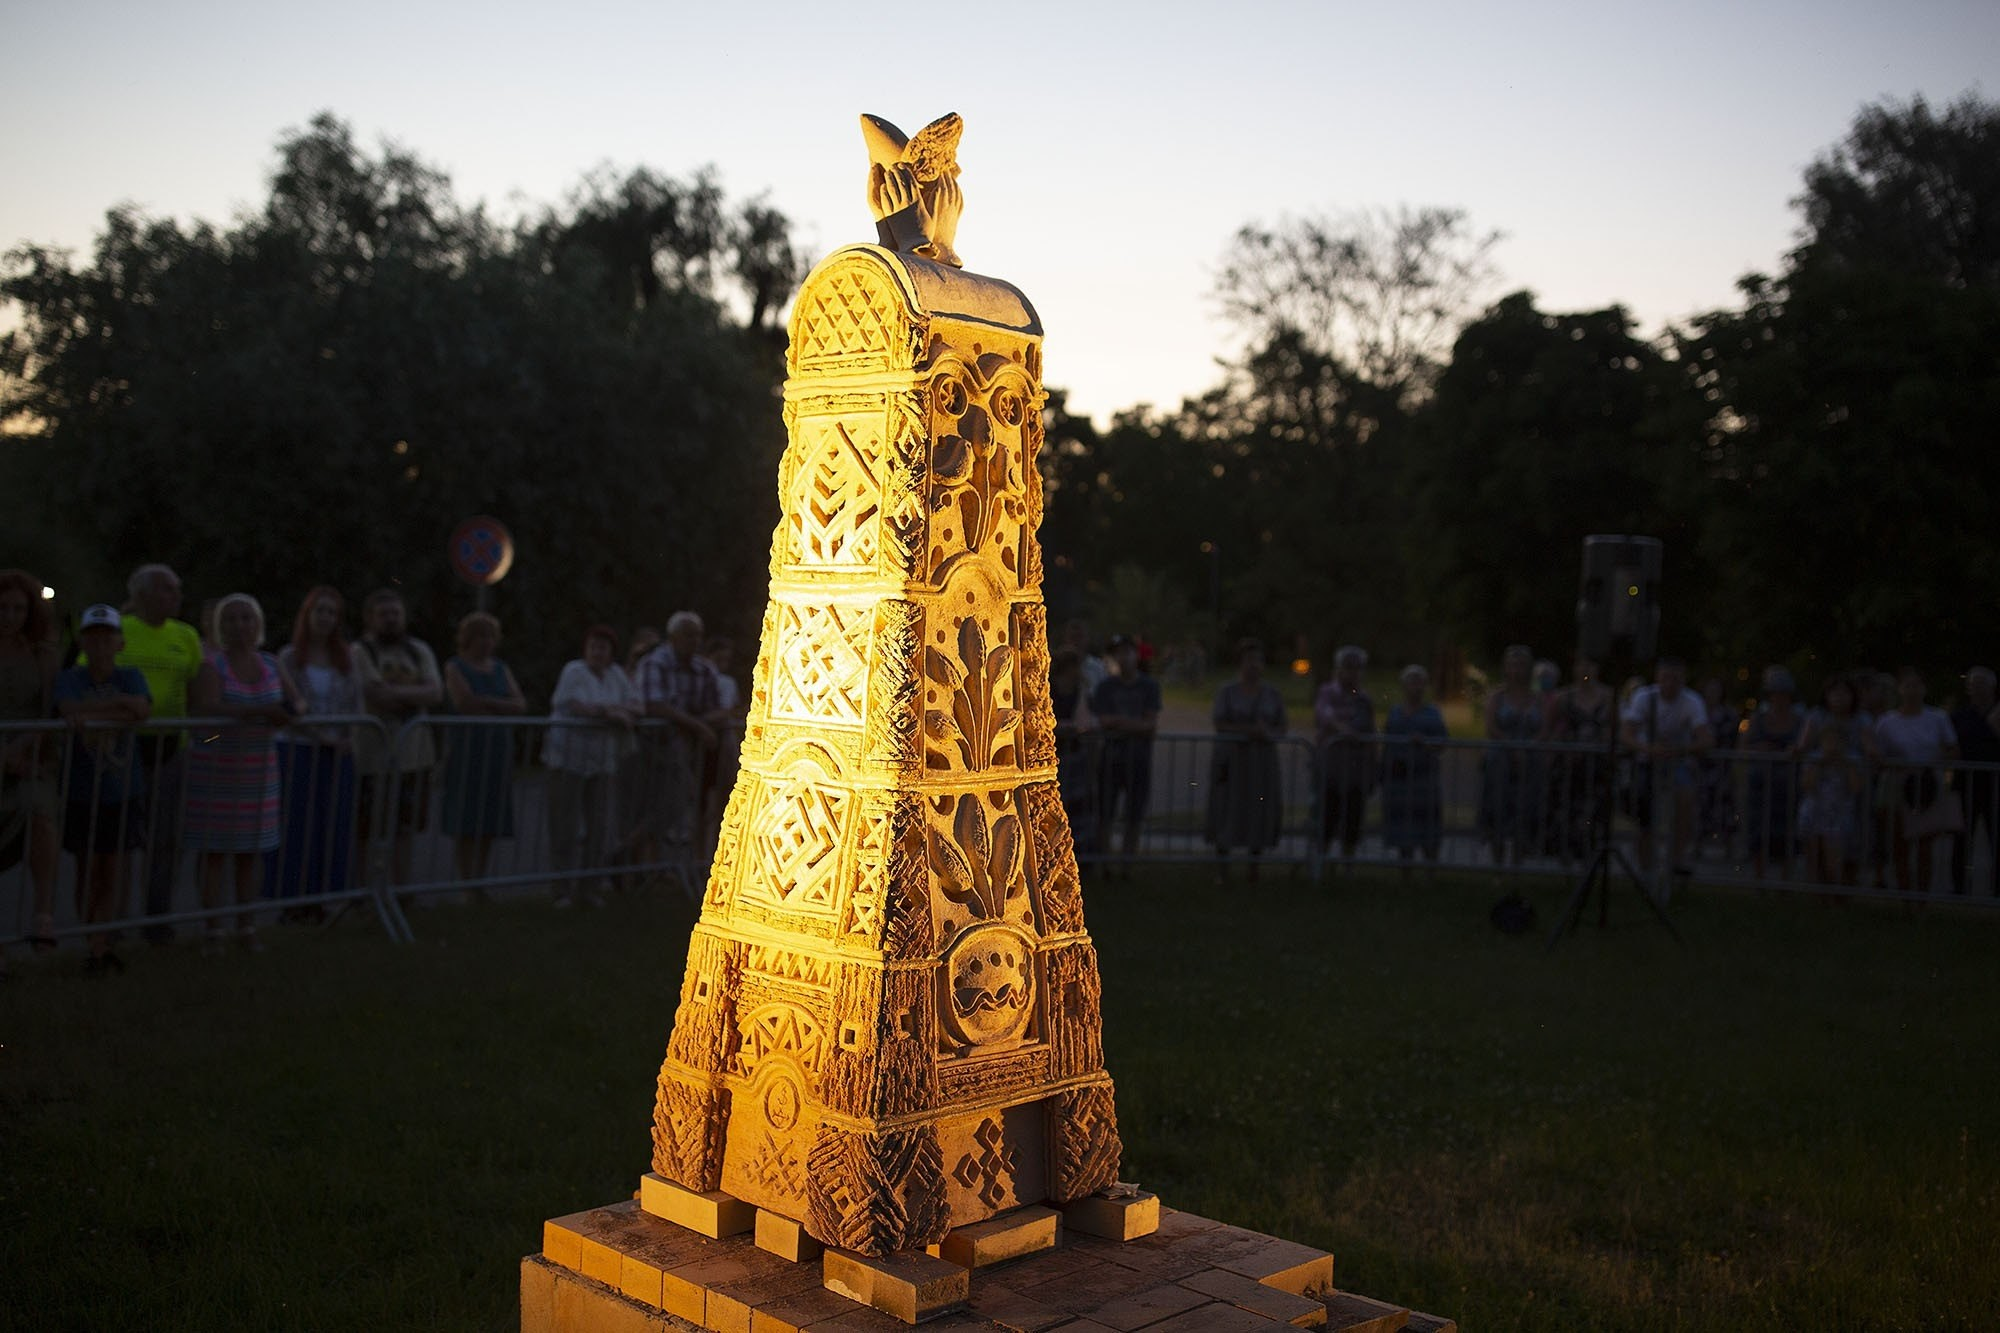 Chamotte sculptures are glowing for the ninth time in Jelgava